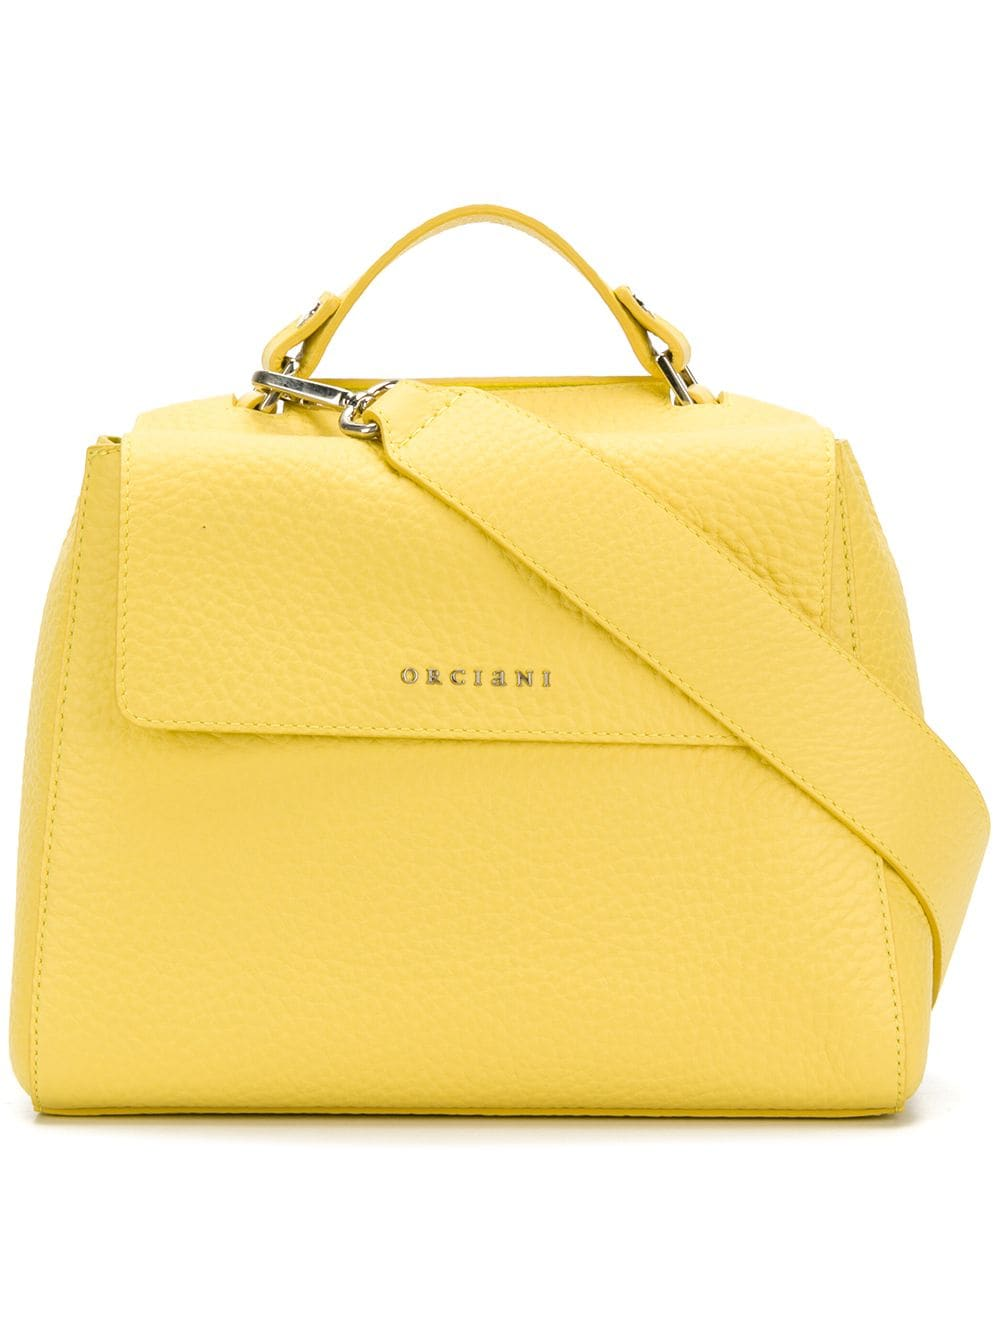 Orciani: Yellow Flap Tote